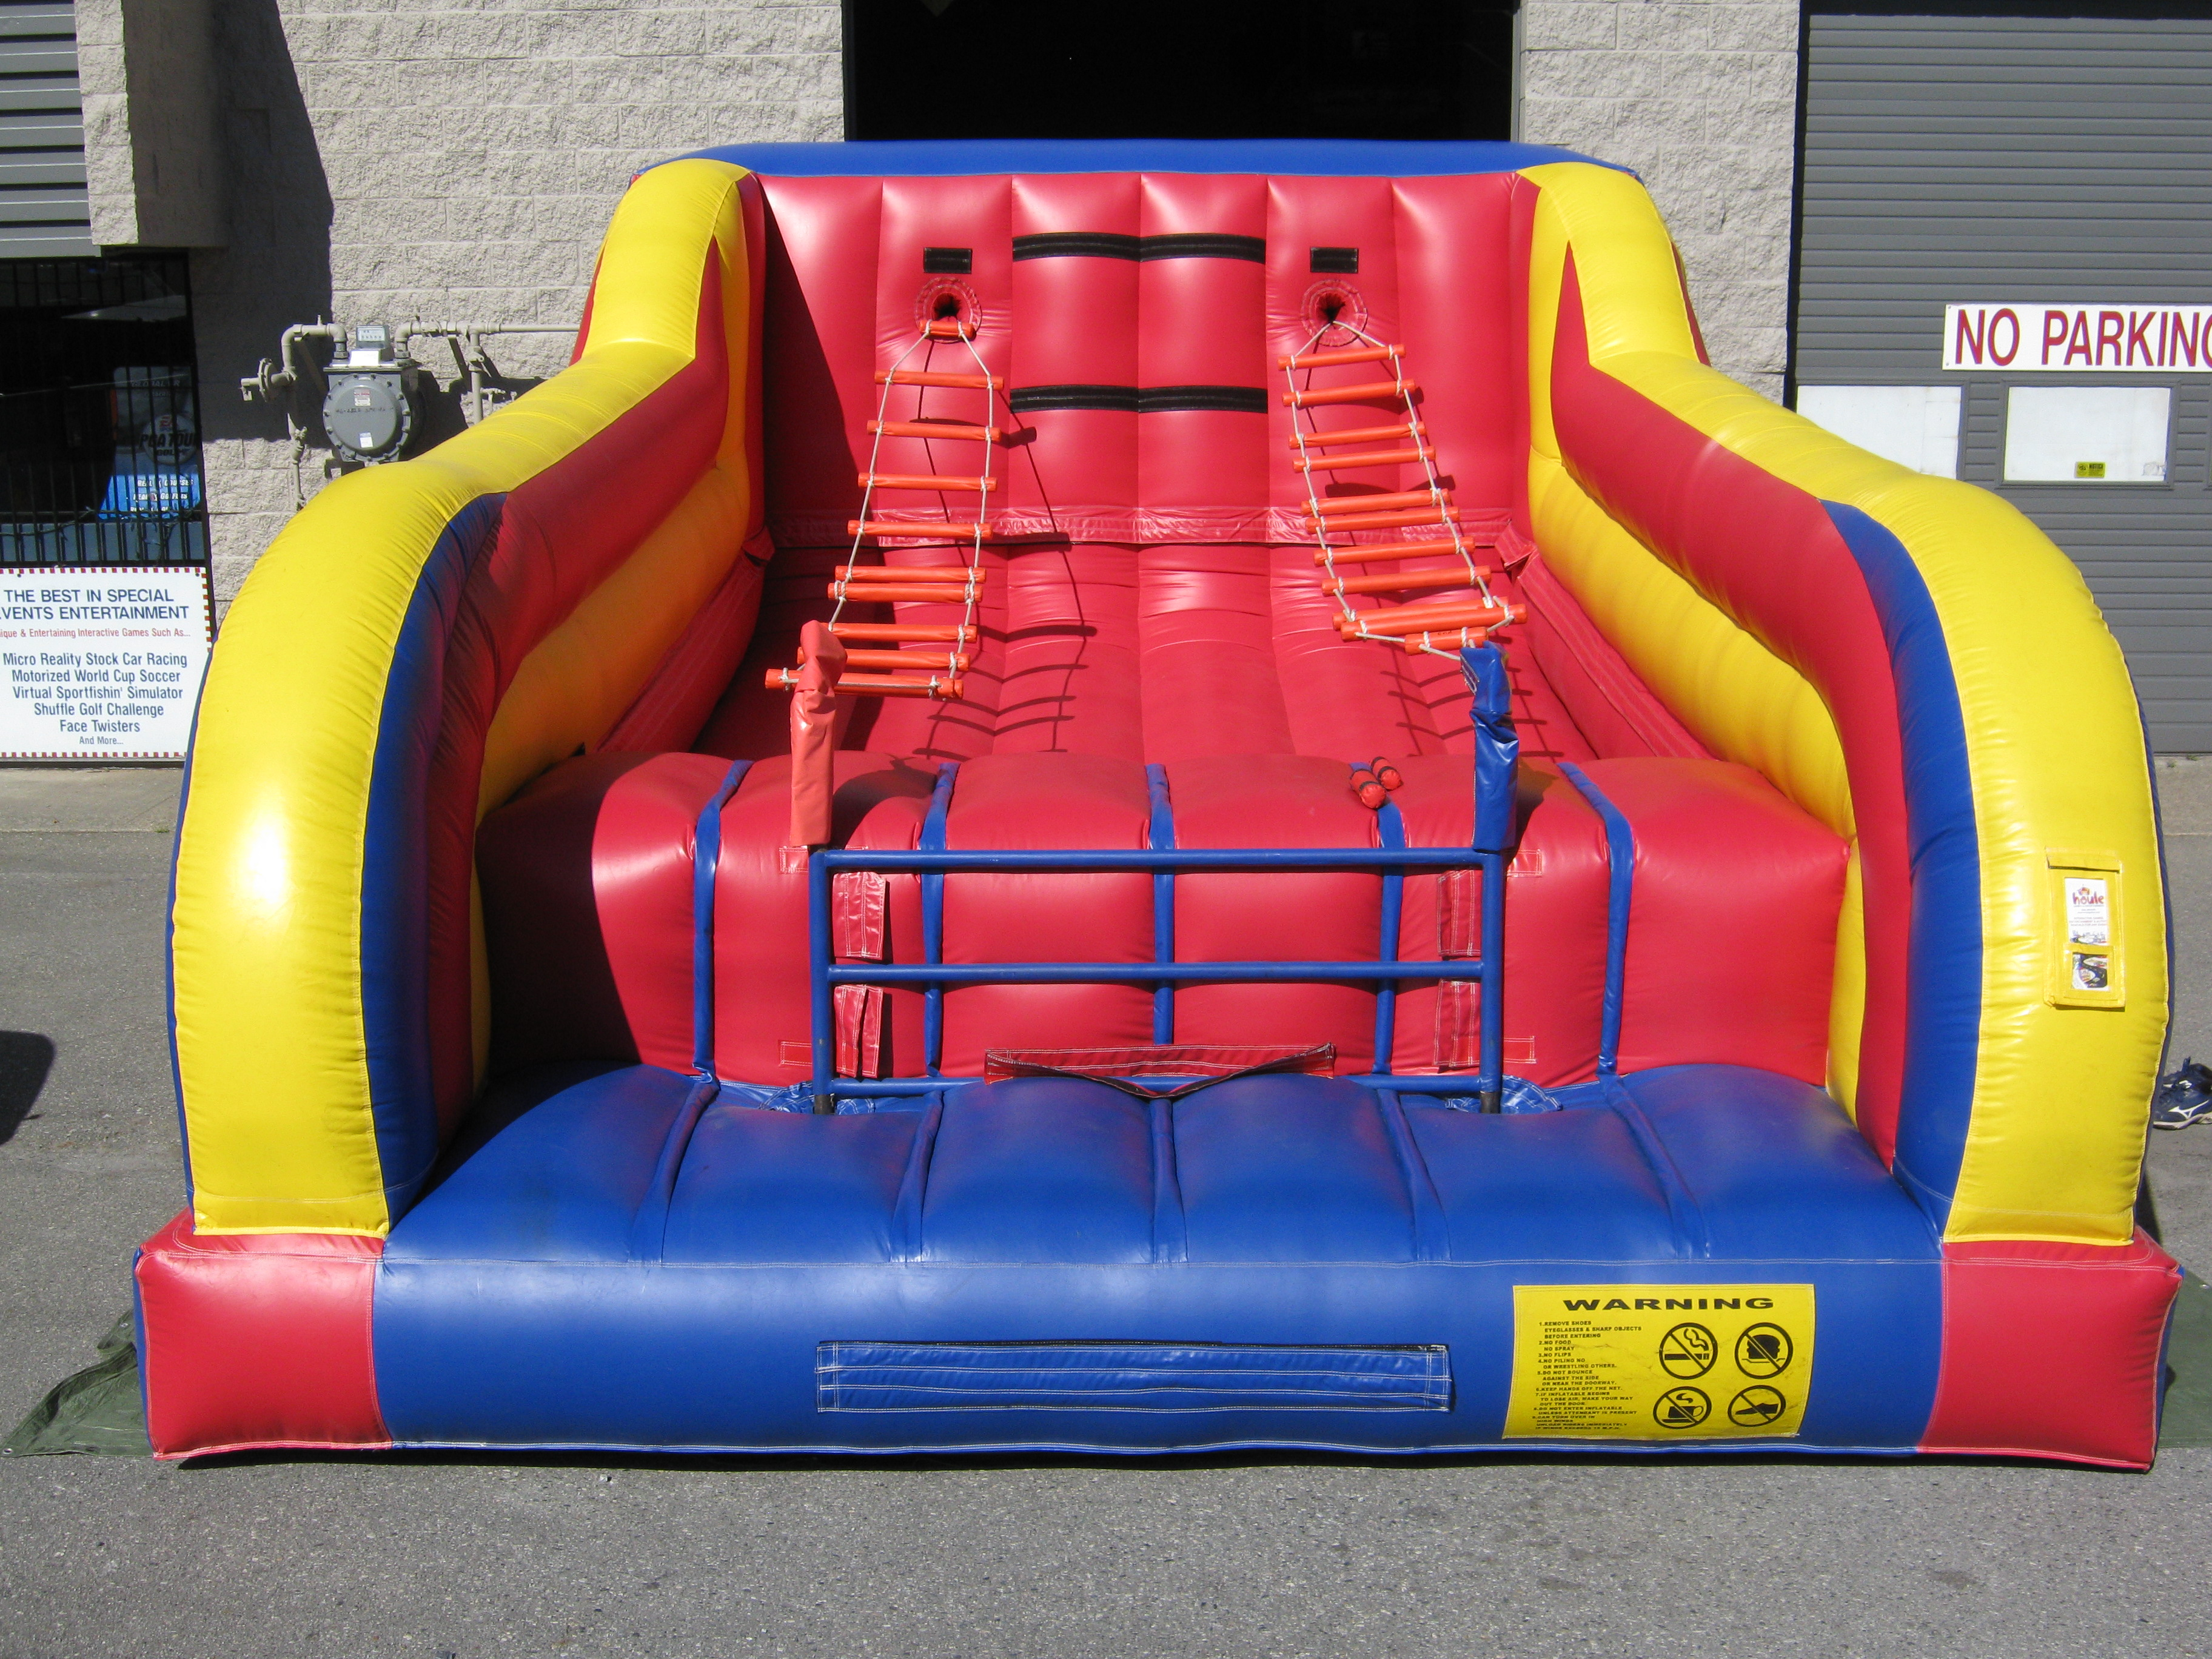 Inflatable Game Rental Vancouver Jacobs Ladder Houle Games